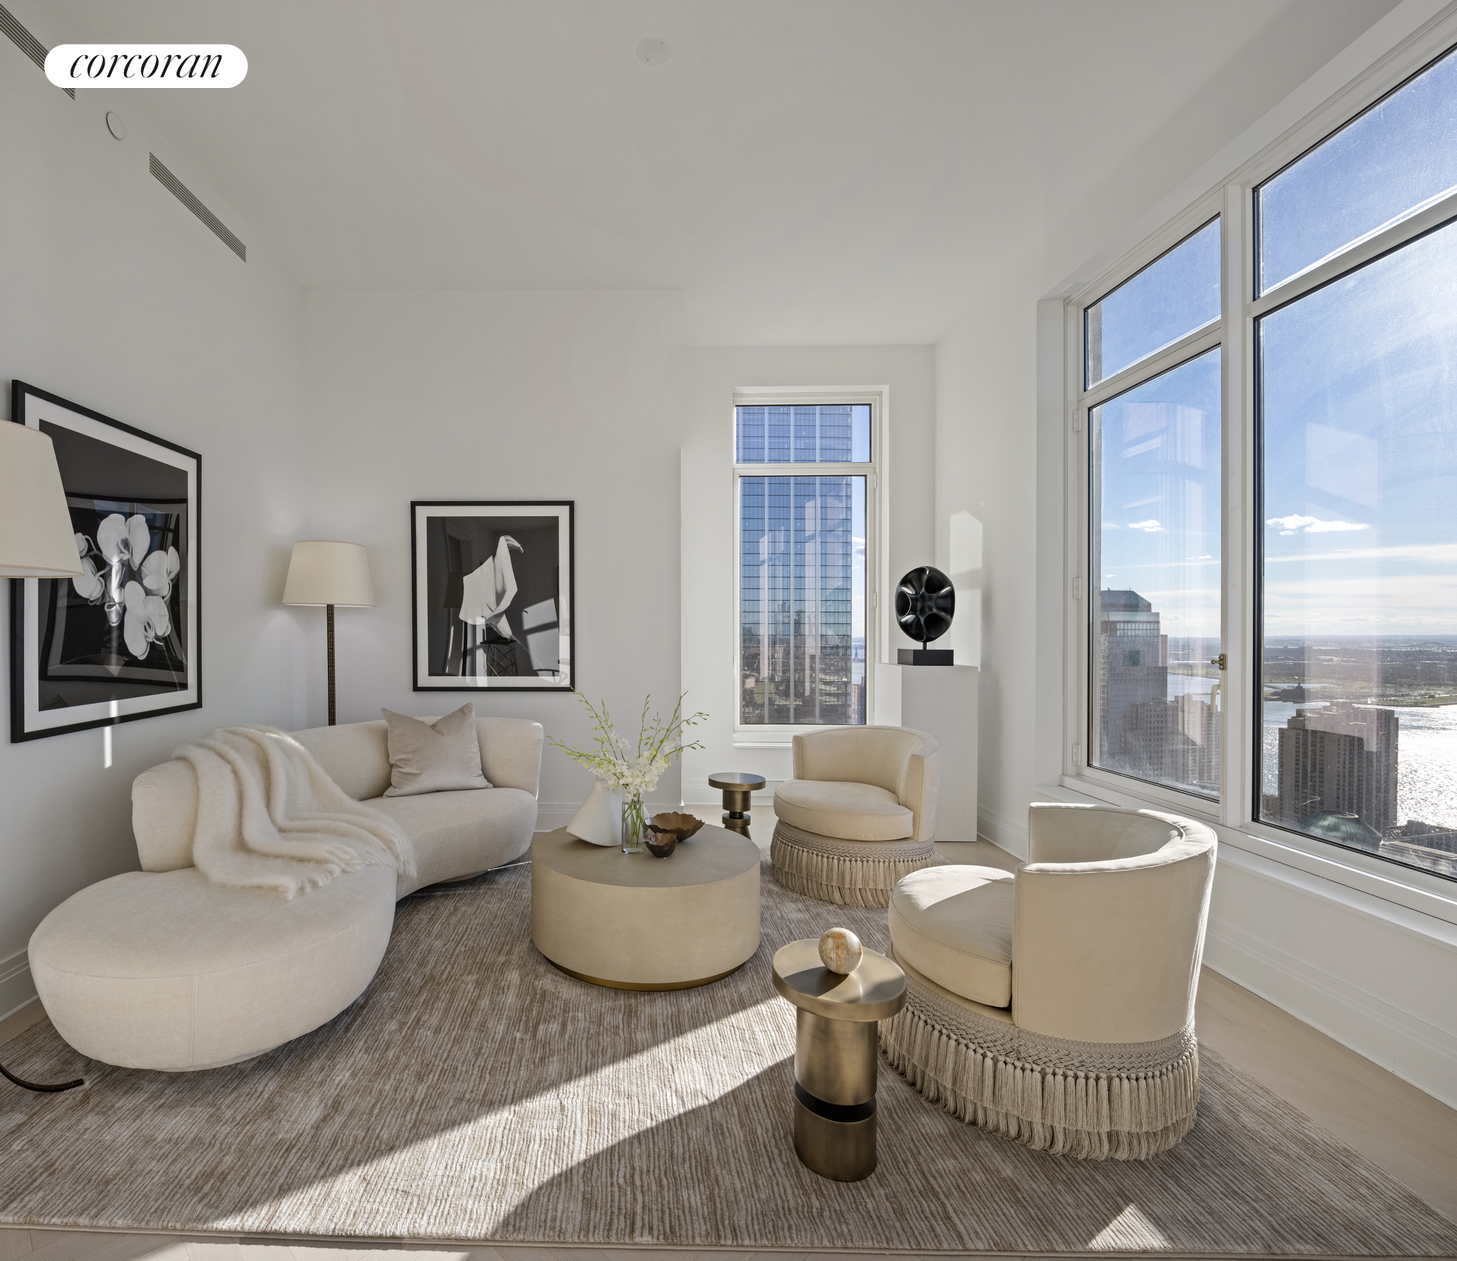 For immediate occupancy: Situated on the southwest corner, one can enjoy sunset views from this dual exposure home. The Master Bedroom Suite has total privacy within its own wing with a Walk-In Closet and 5-fixture bathroom. Welcome to 5-star living at 30 Park Place, Four Seasons Private Residences New York, Downtown.  Developed by visionary Silverstein Properties, Inc., masterfully designed by Robert A.M. Stern Architects, and serviced by legendary Four Seasons Hotels and Resorts.  With residences beginning on the 39th floor, the sweeping views are unparalleled.  Residents may enjoy access to Four Seasons Hotel amenities including a spa and salon facilities, 75' swimming pool, attended parking garage, restaurant, bar and lounge, ballroom facilities, and meeting rooms, as well as a comprehensive suite of a la carte services.  The 38th floor is devoted to private residential amenities including a fitness center and yoga studio, private dining room, conservatory and lounge with access to loggias, Roto-designed kid's playroom, and screening room.  Interior finishes include solid oak wood flooring with herringbone pattern in the formal rooms, Bilotta rift-cut oak kitchen cabinetry, Gaggenau appliances, and marble bathrooms with Robert A.M. Stern custom-designed vanities. Systems feature ceiling hung four-pipe fan coil heating and air conditioning system with dedicated zones and pre-wiring for home automation.The complete terms are in an offering plan available from the Sponsor (File No: CD 13-0258).